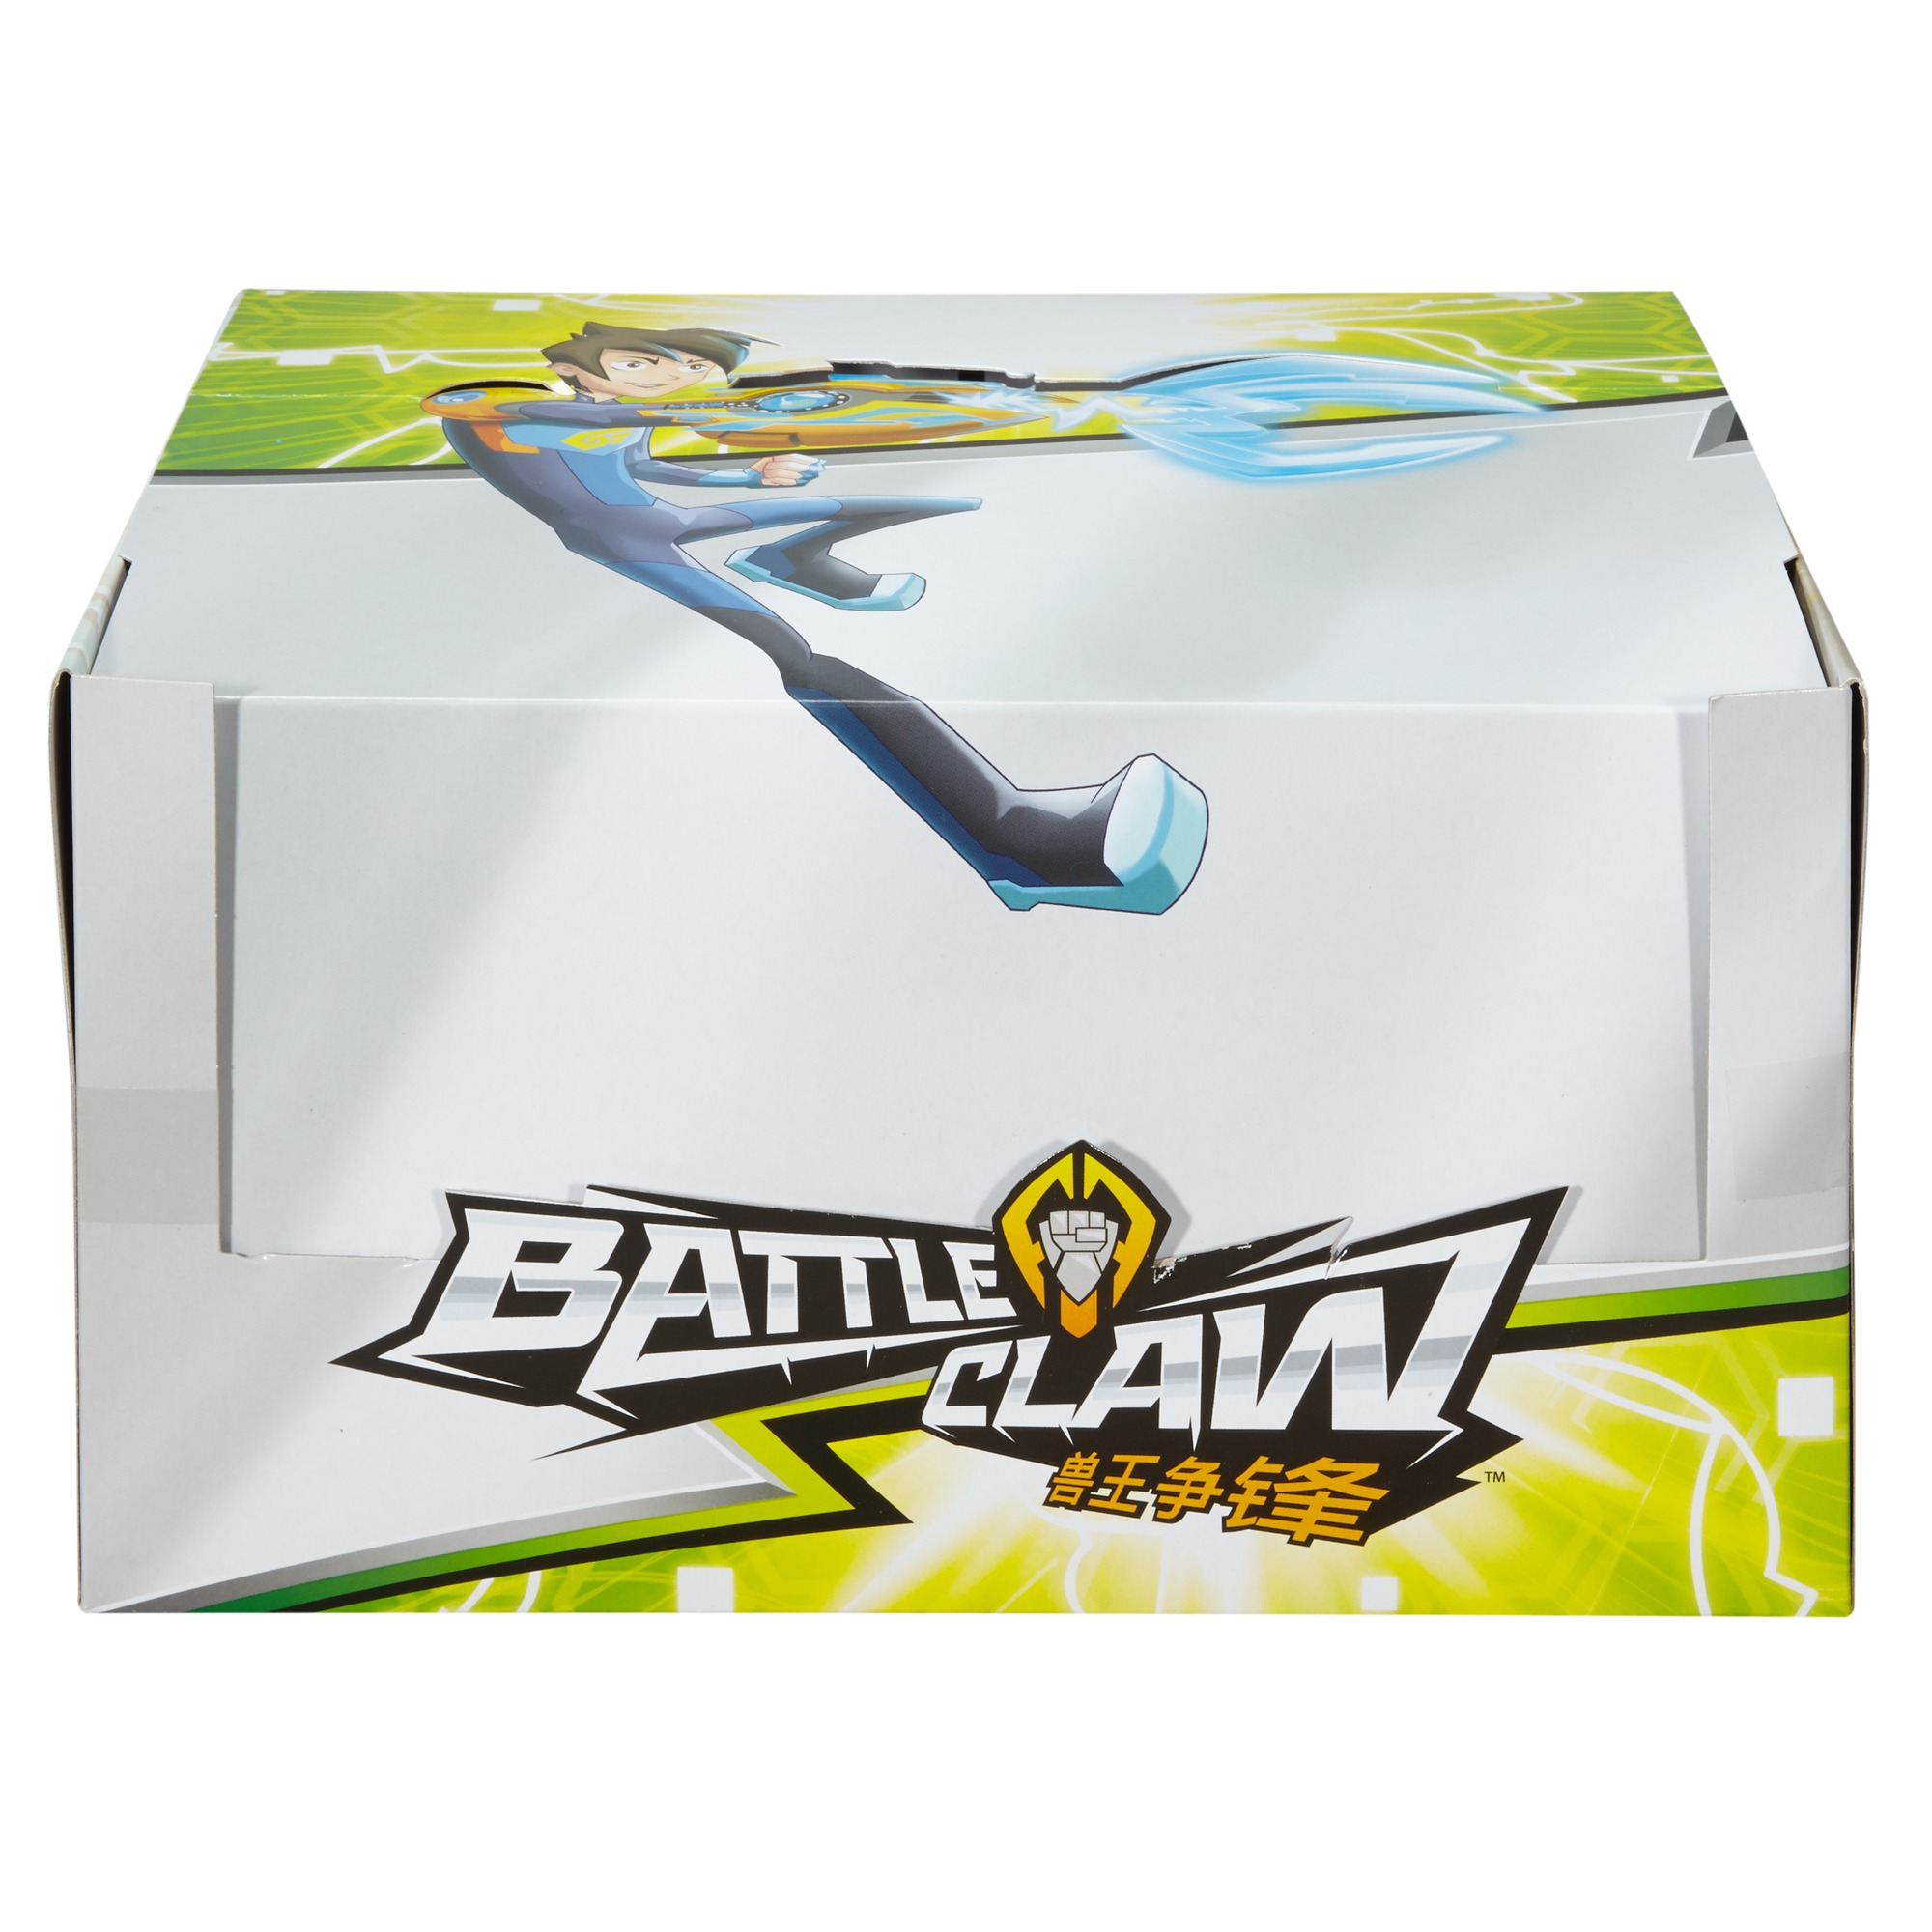 Battleclaw Booster Pack with Power-Up Tokens Assortment Parent